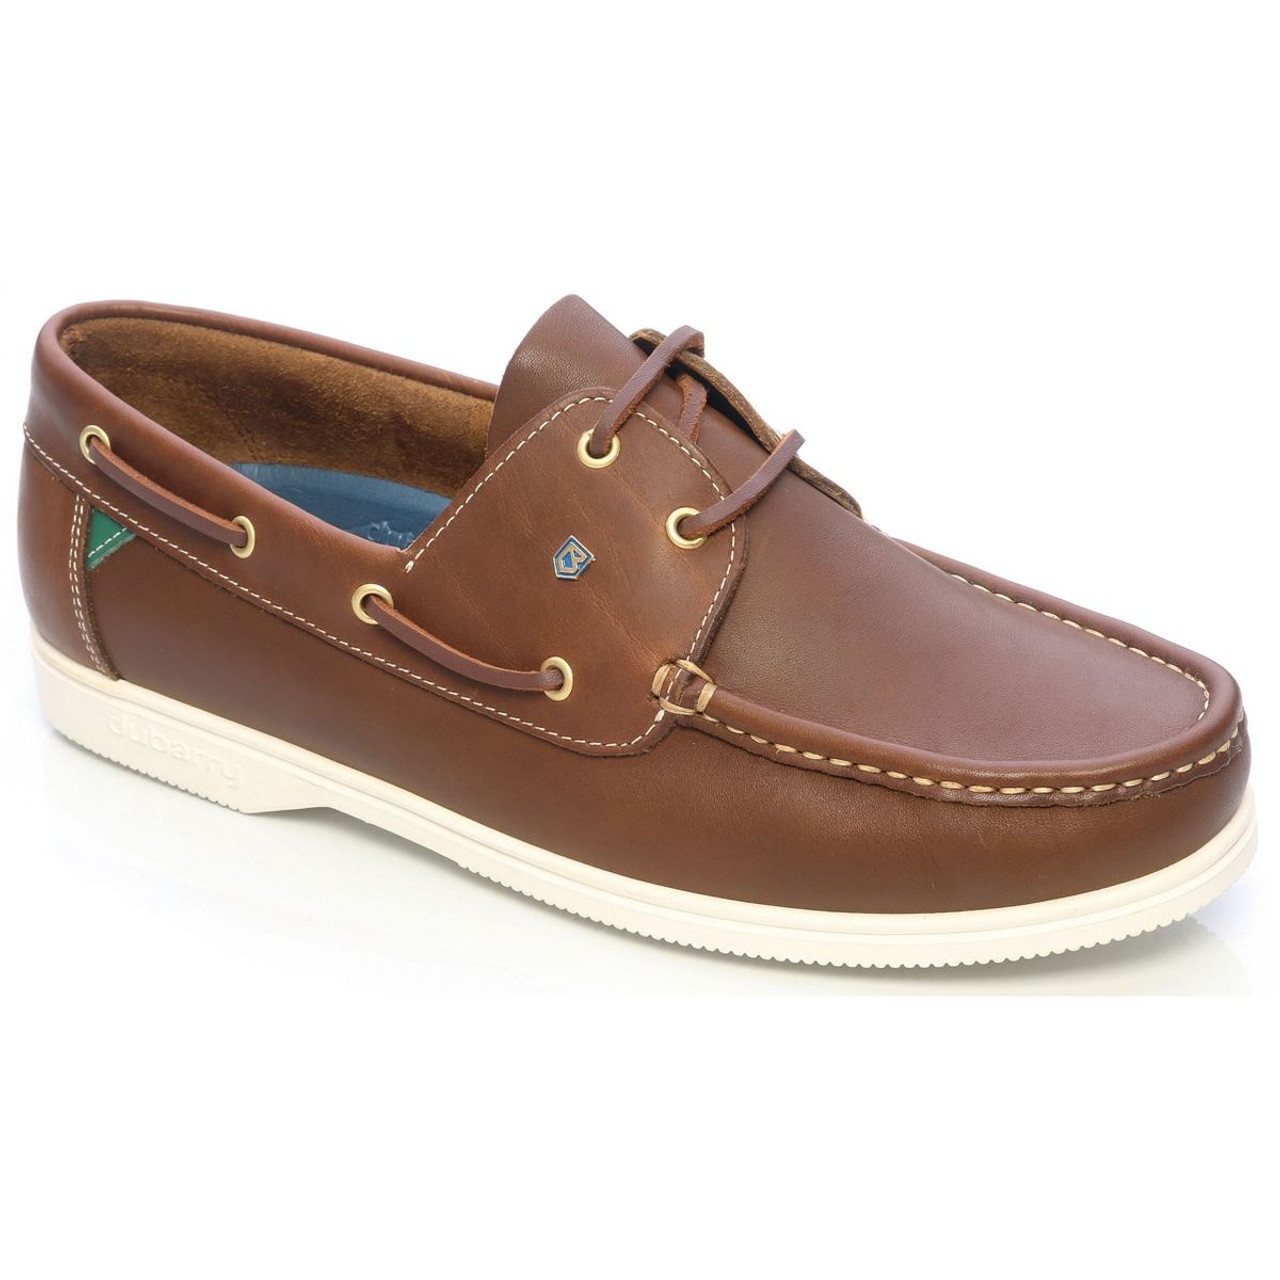 Dubarry Admirals Deck Shoe in Brown